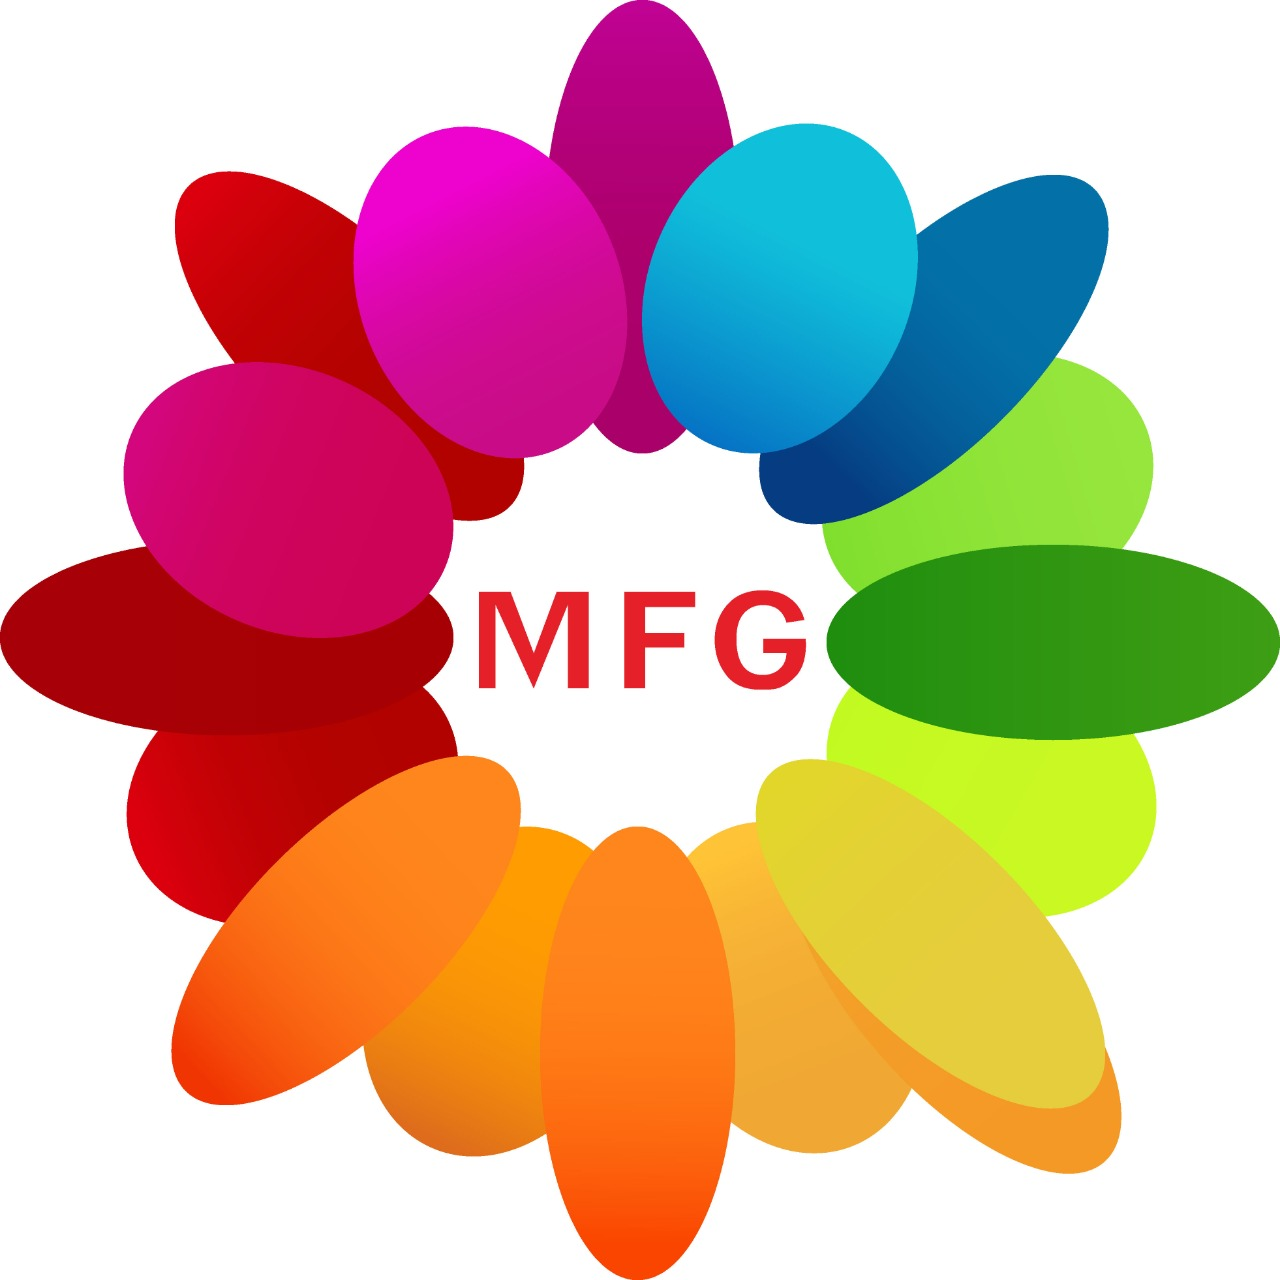 Bunch of 15 red roses with 1 kg butterscotch cake with bottle of wine